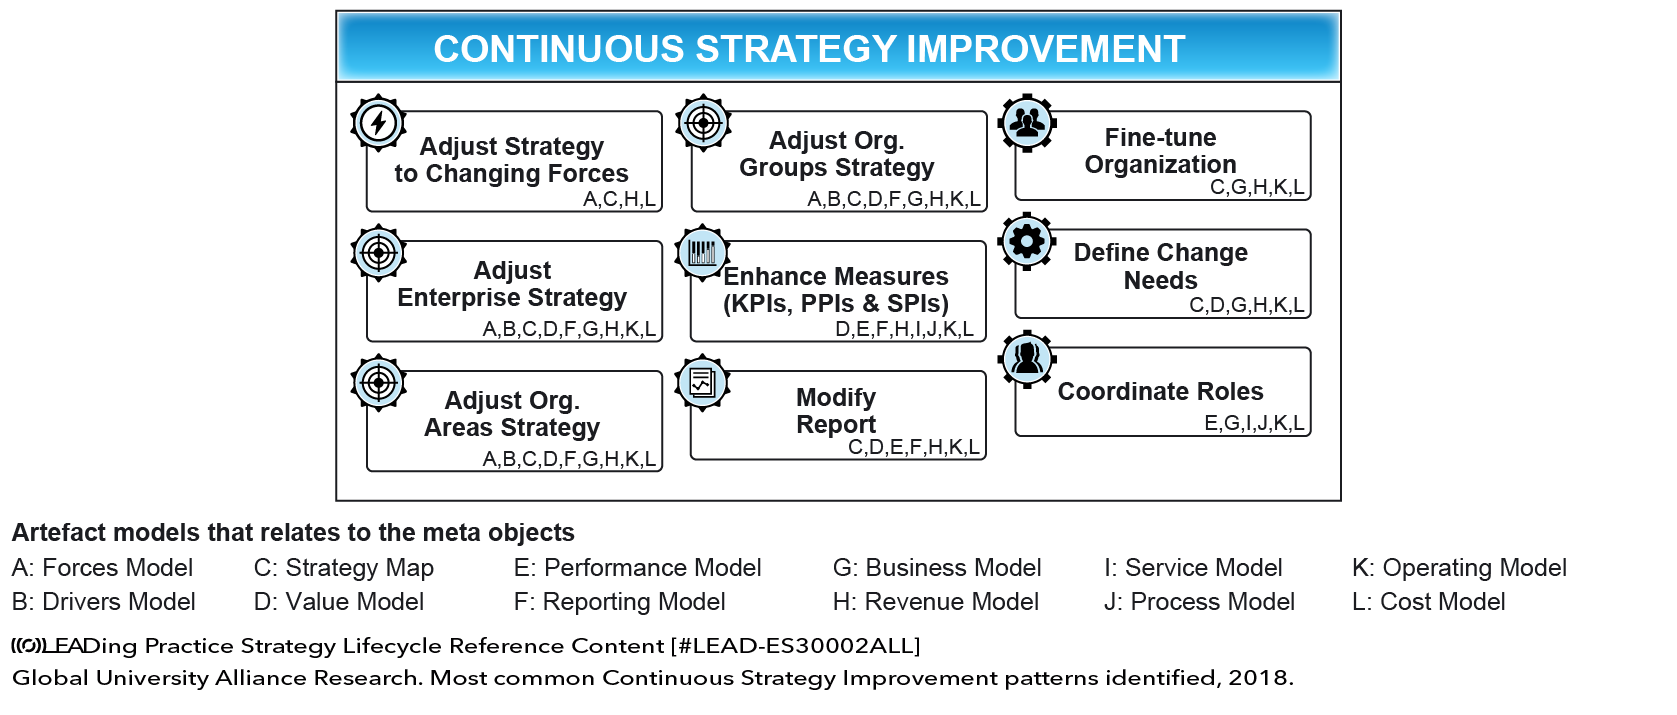 CONTINUOUS STRATEGY IMPROVEMENT